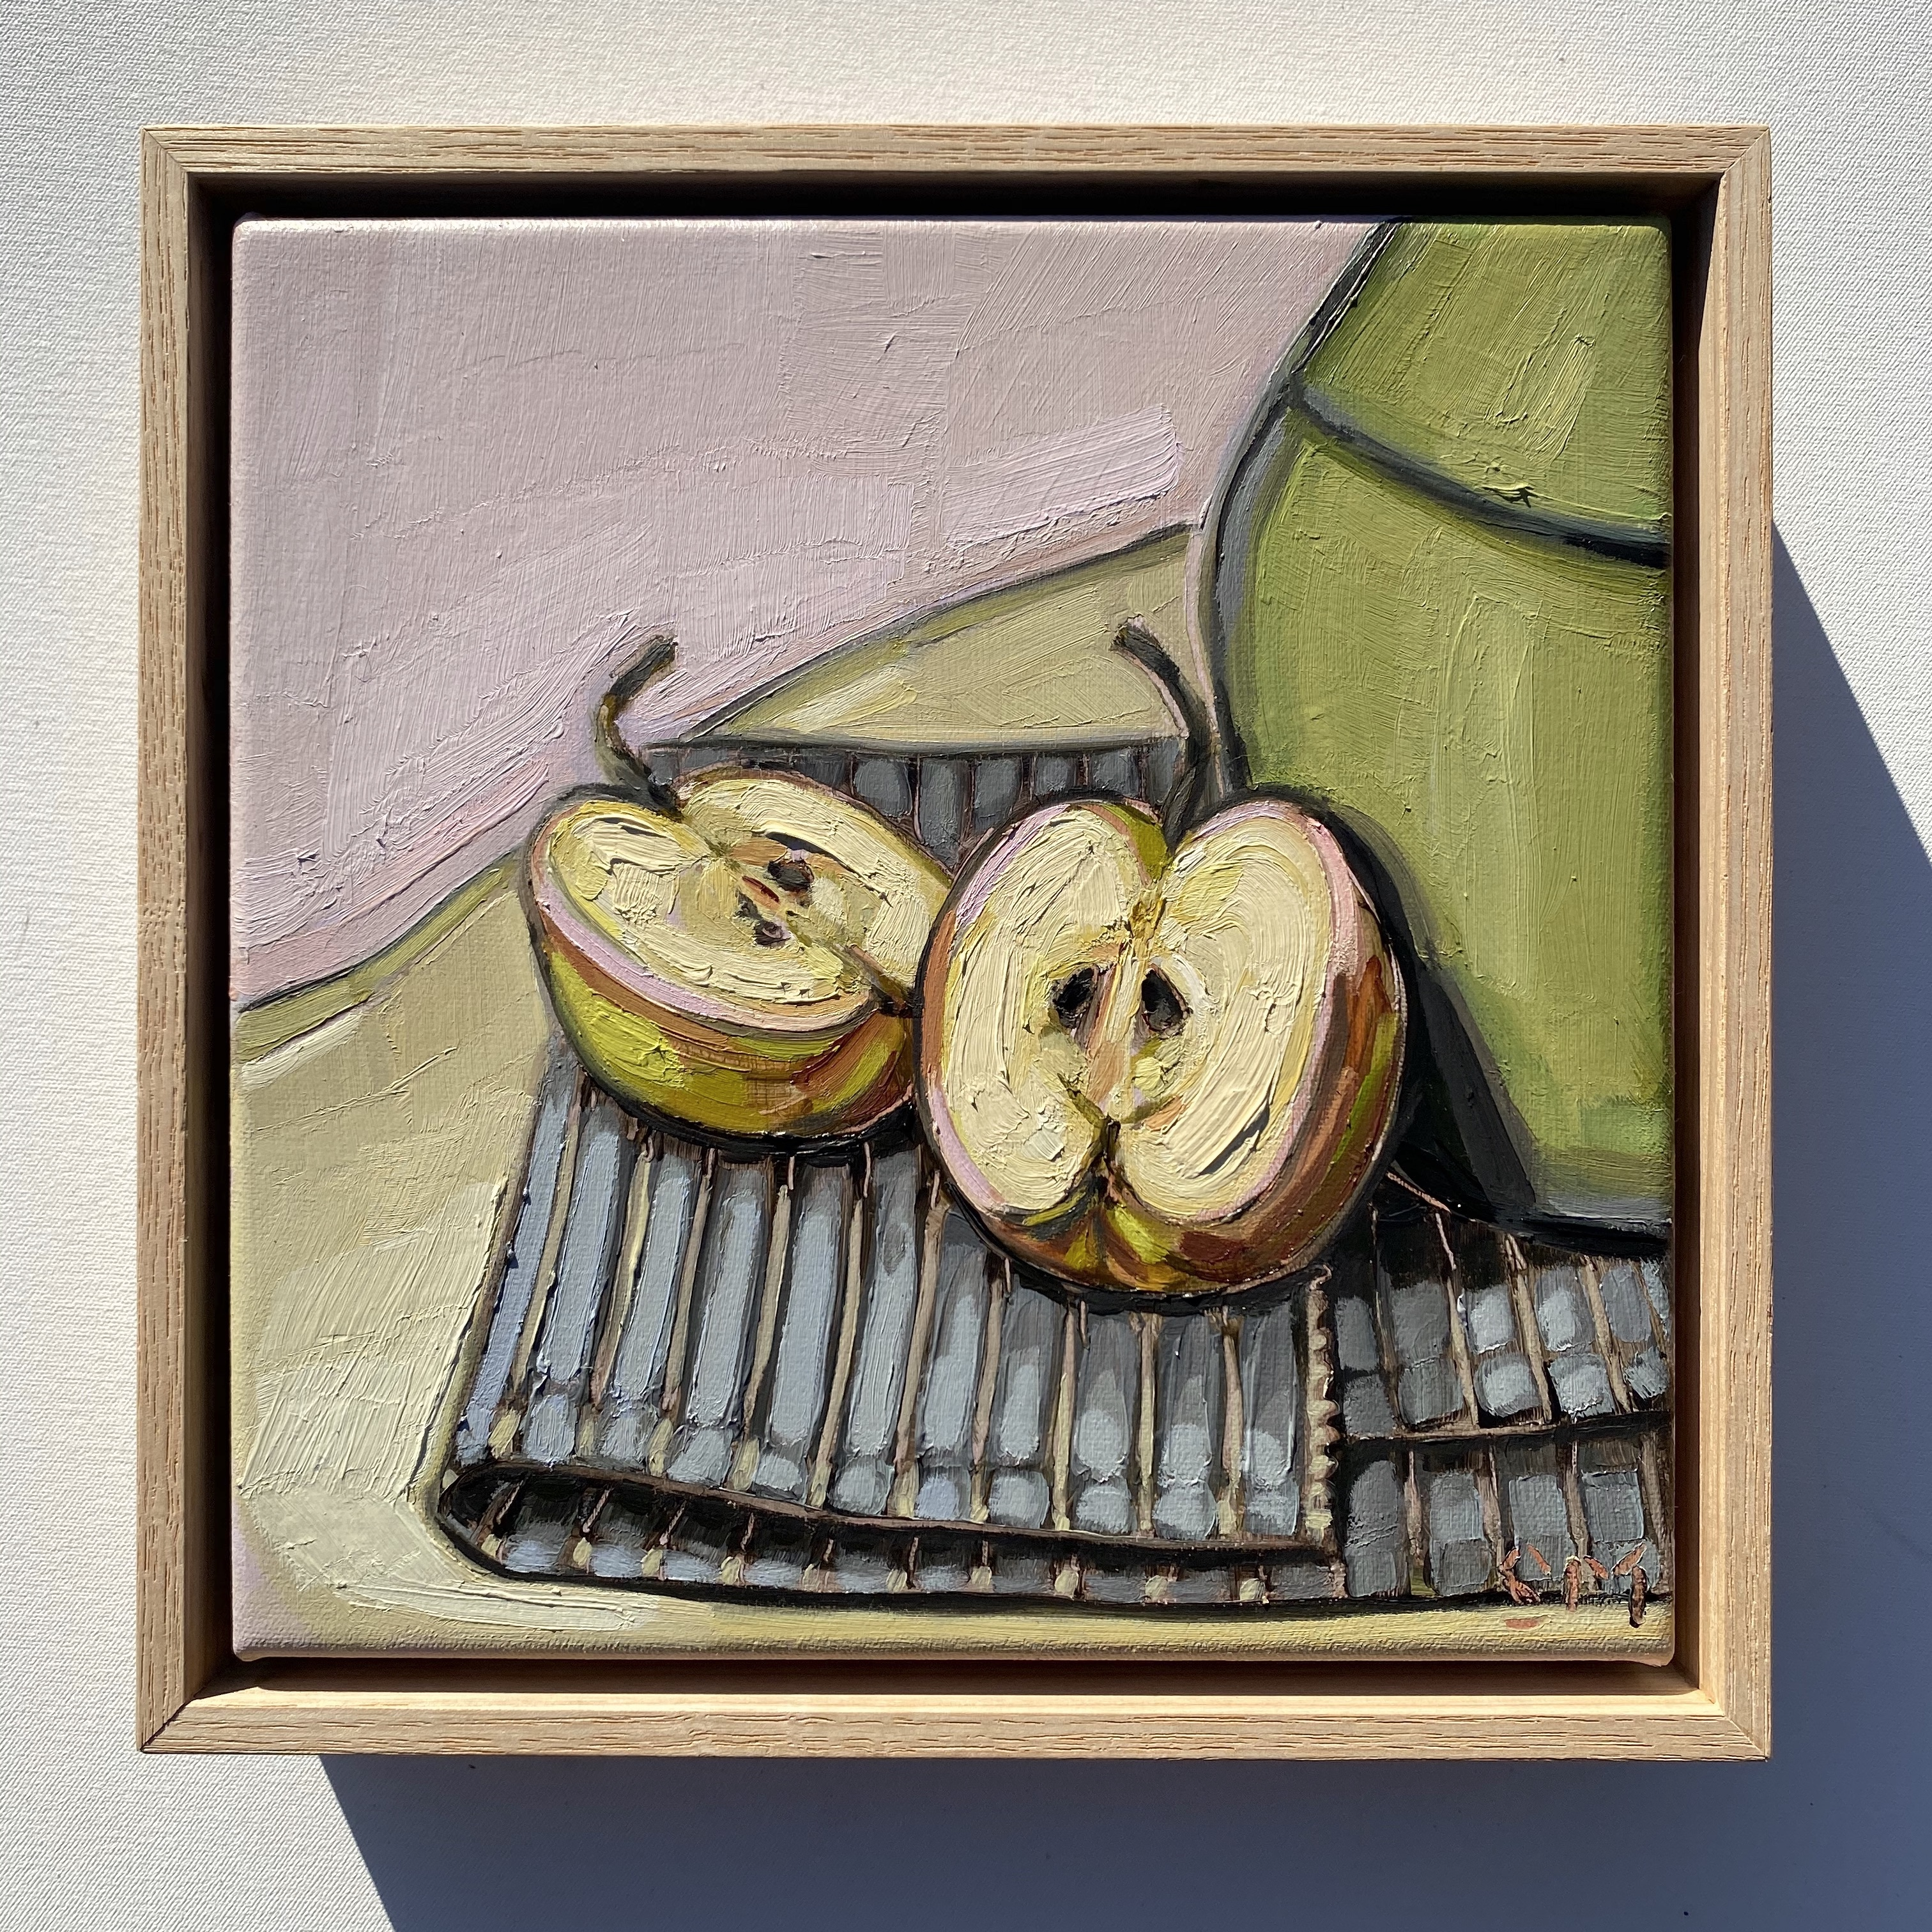 sam michelle 'apples' 25x25cm 2020